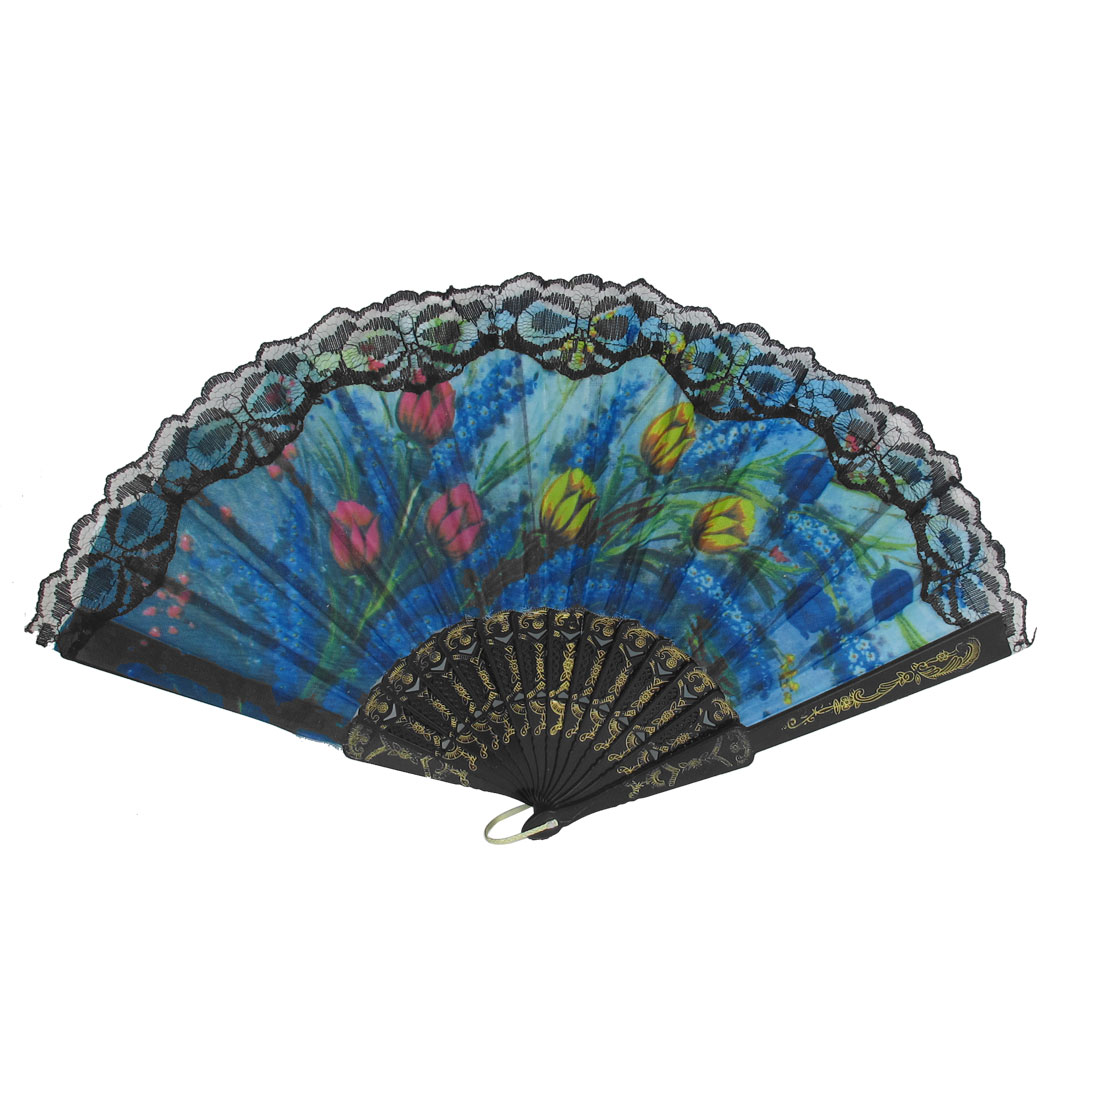 Wedding Party Gift Plastic Frame Lace Decor Handheld Flower Pattern Folding Hand Fan Black